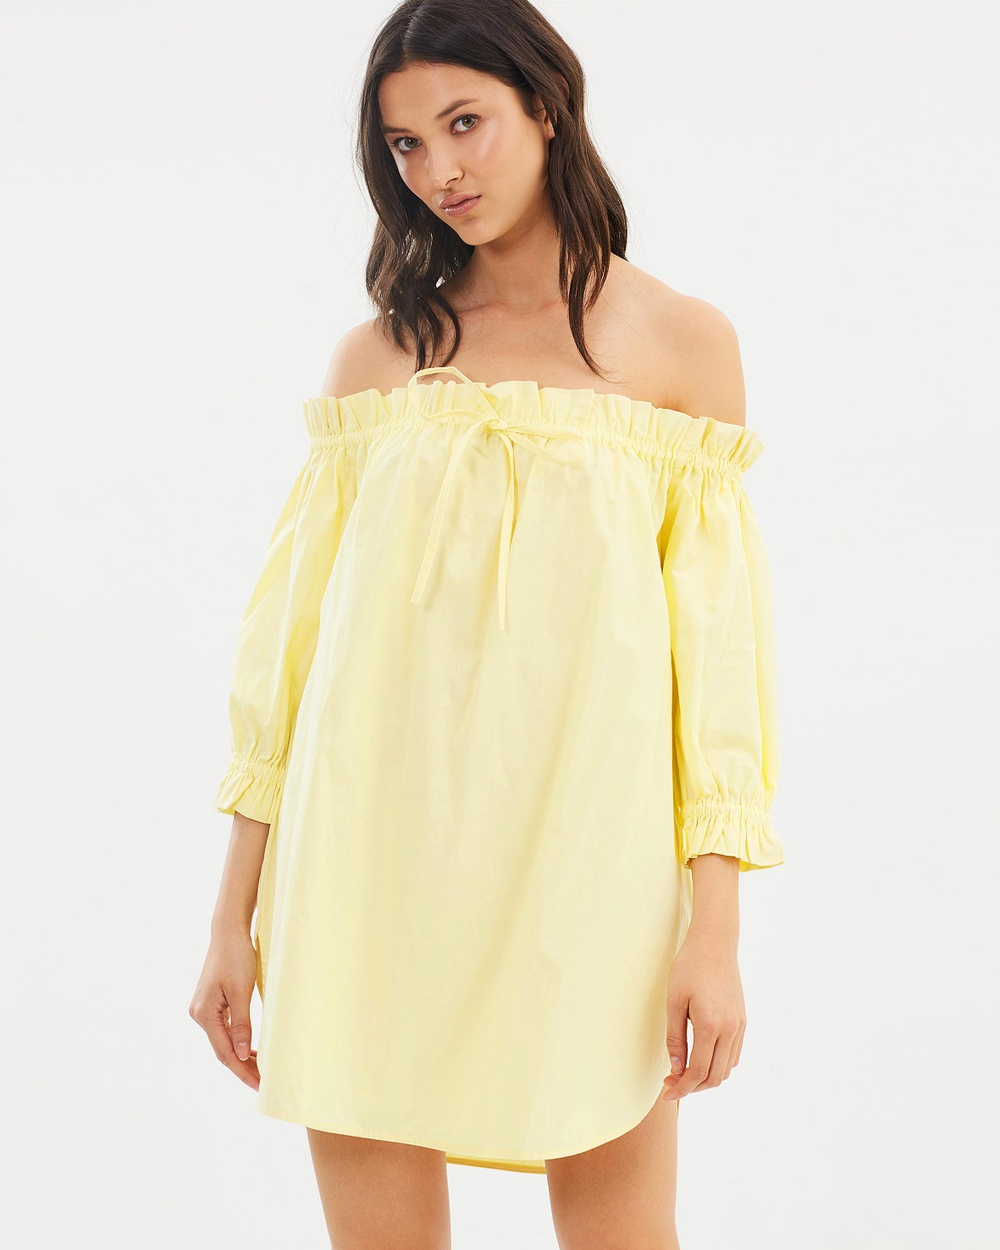 Maurie & Eve Marcello Dress Dresses Citron Marcello Dress